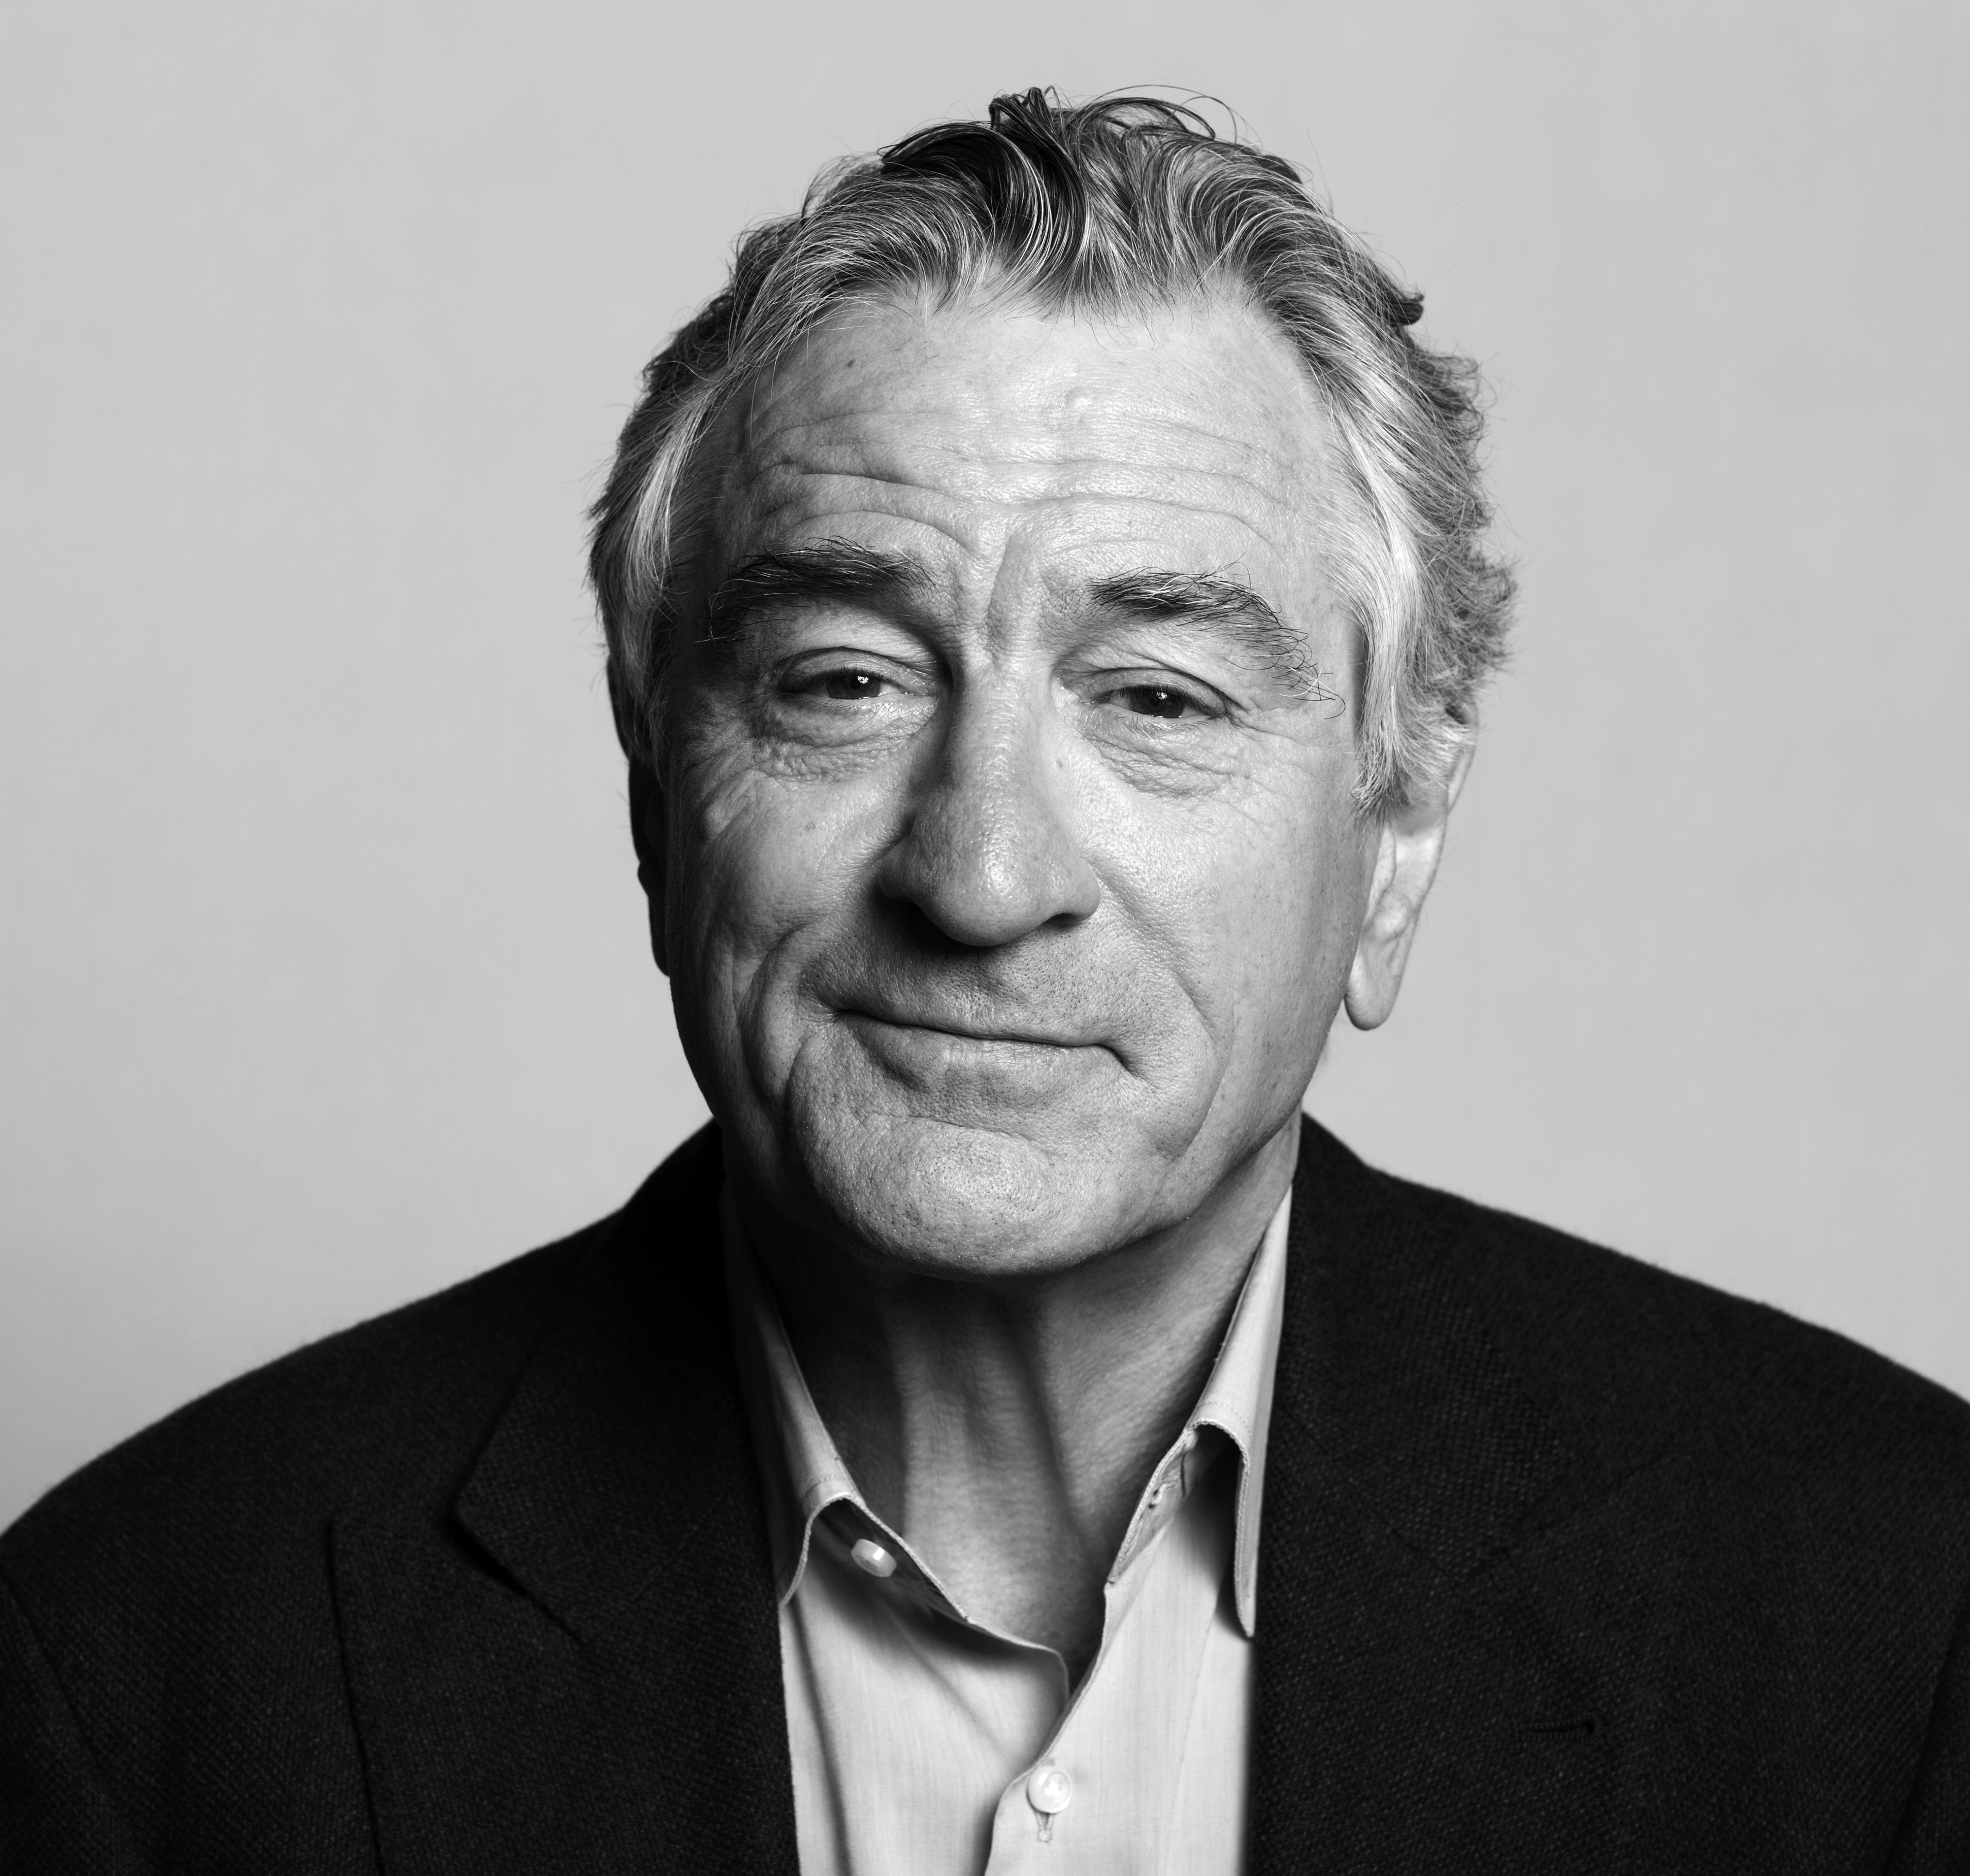 Robert De Niro Marrakech Film Festival